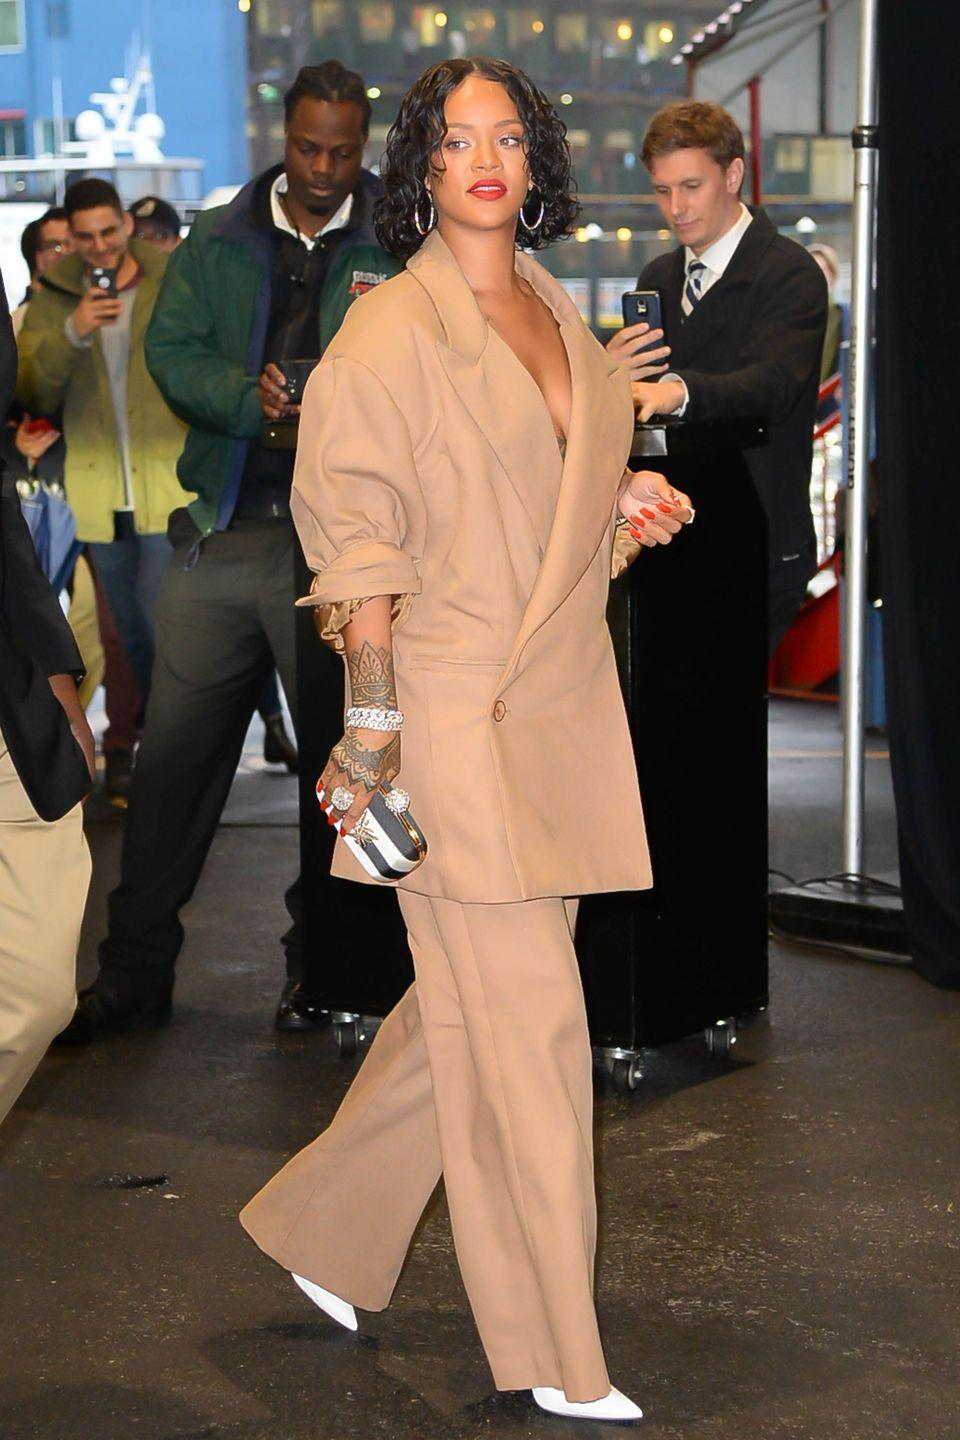 <p>In a custom Matthew Adams Dolan tan suit, striped clutch, white pumps and hoop earrings while out in New York City.</p>